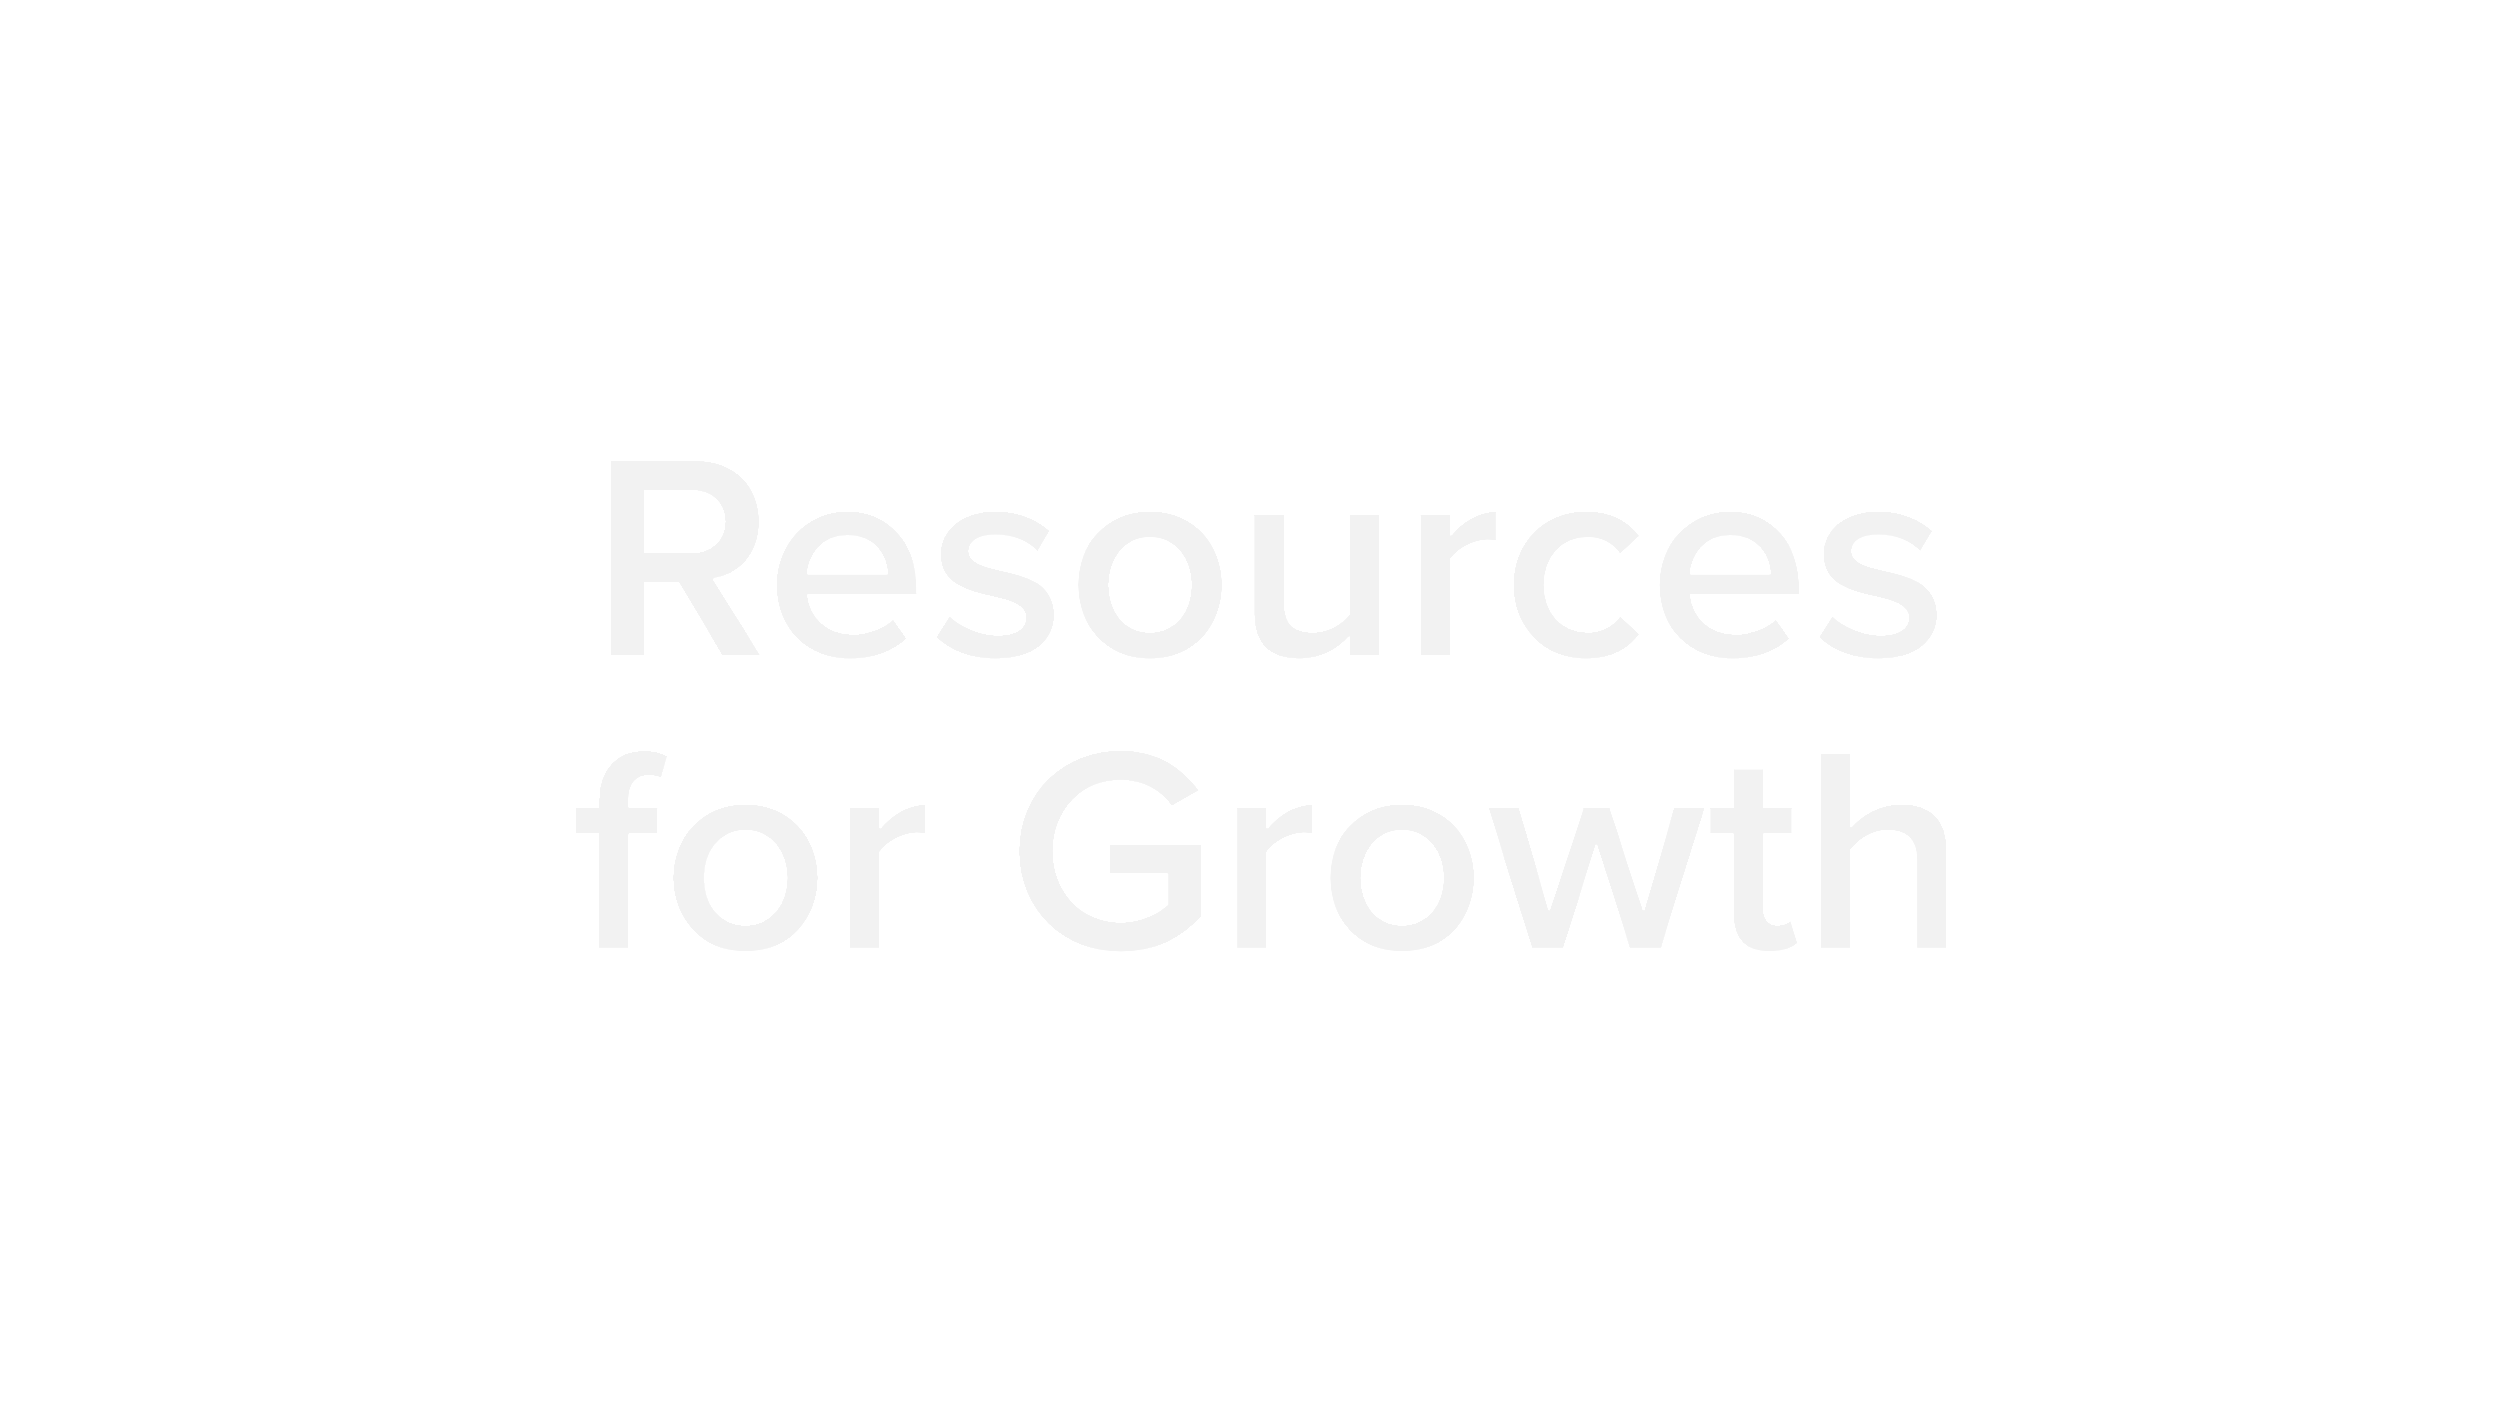 RESOURCES FOR GROWTH.png